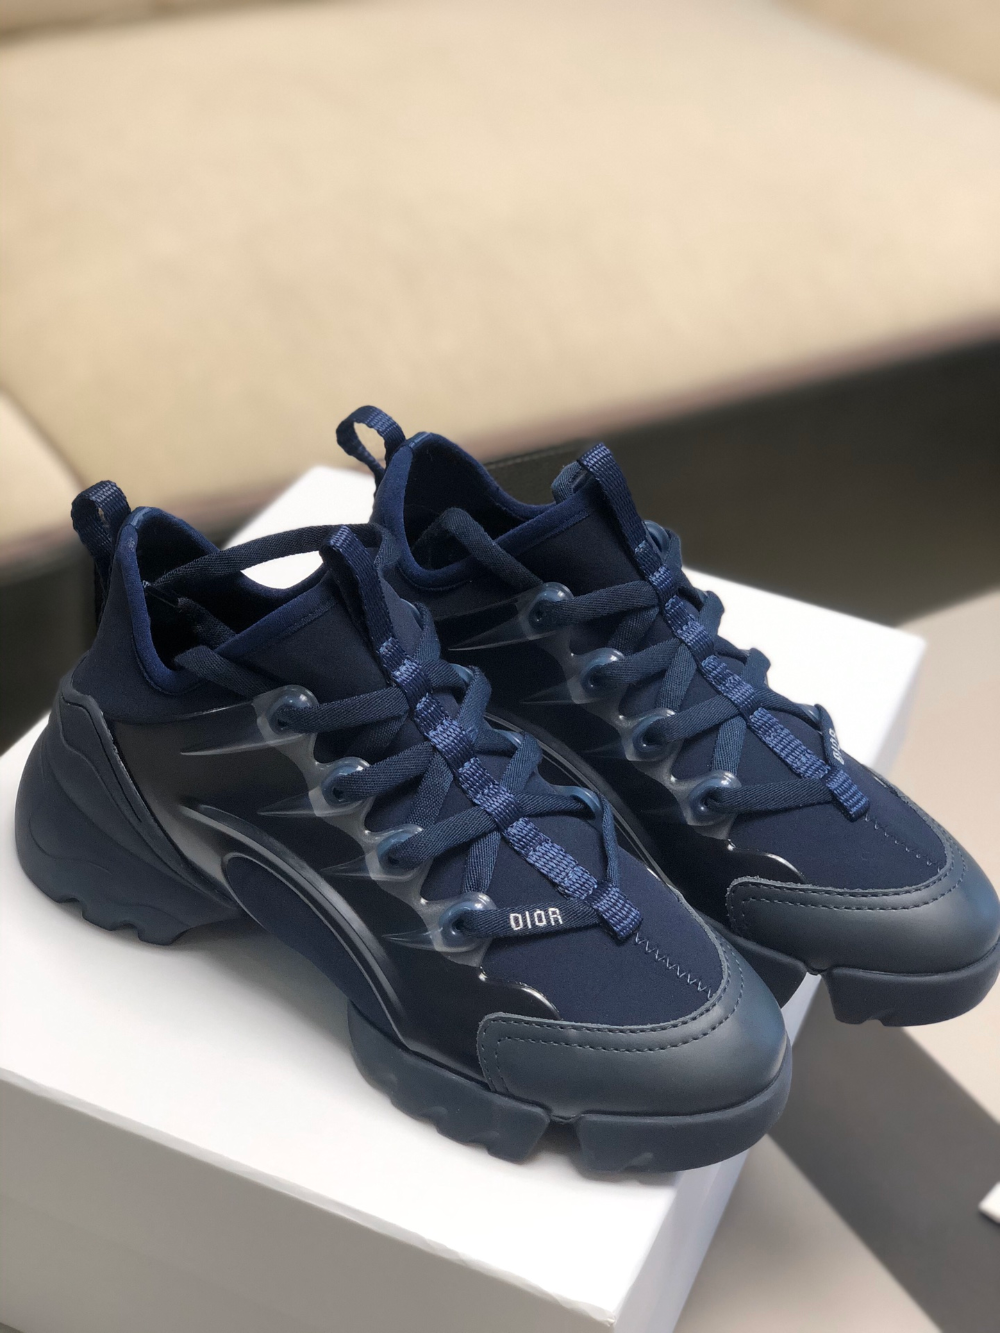 Dior D Connect Leather Neoprene Sneaker 35 To 41 A151PP450